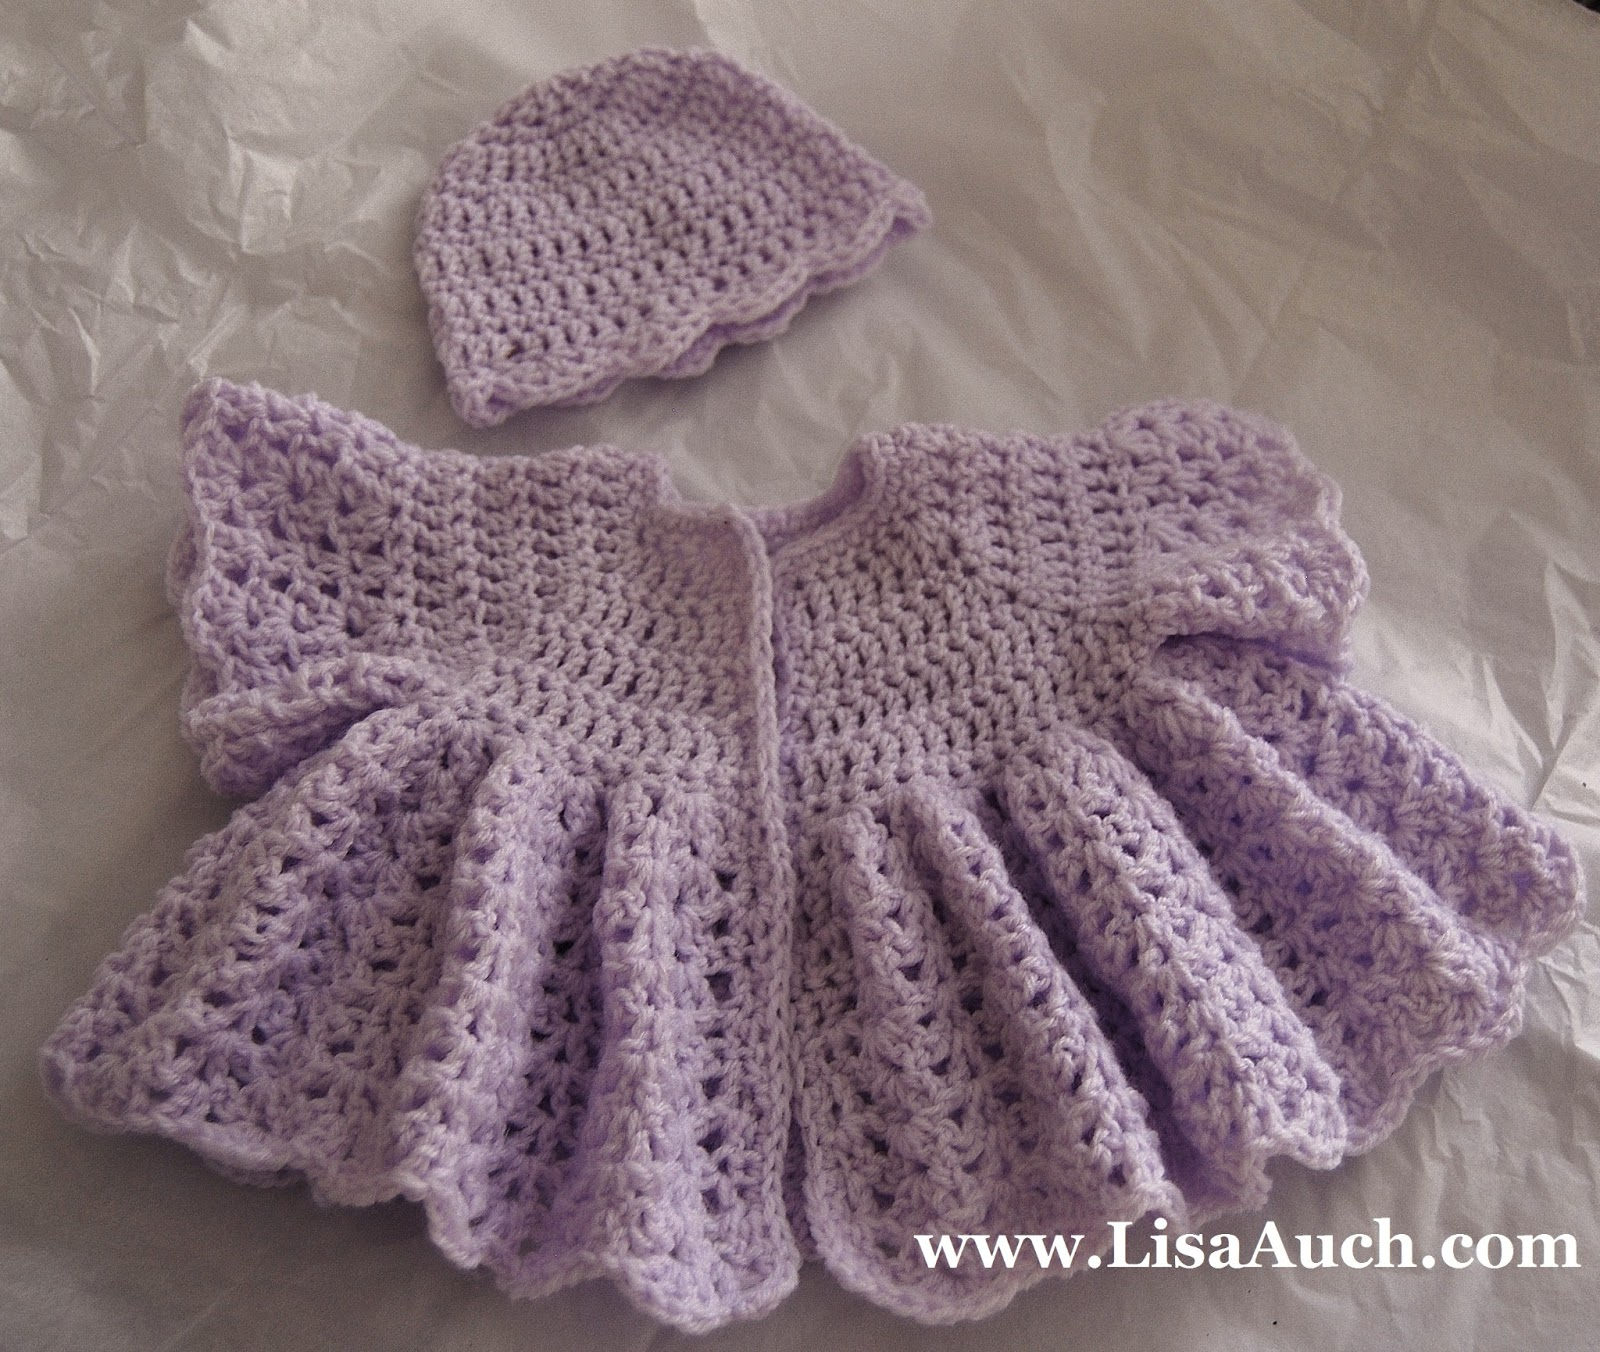 Free Crochet Patterns And Designs By Lisaauch Free Crochet Pattern